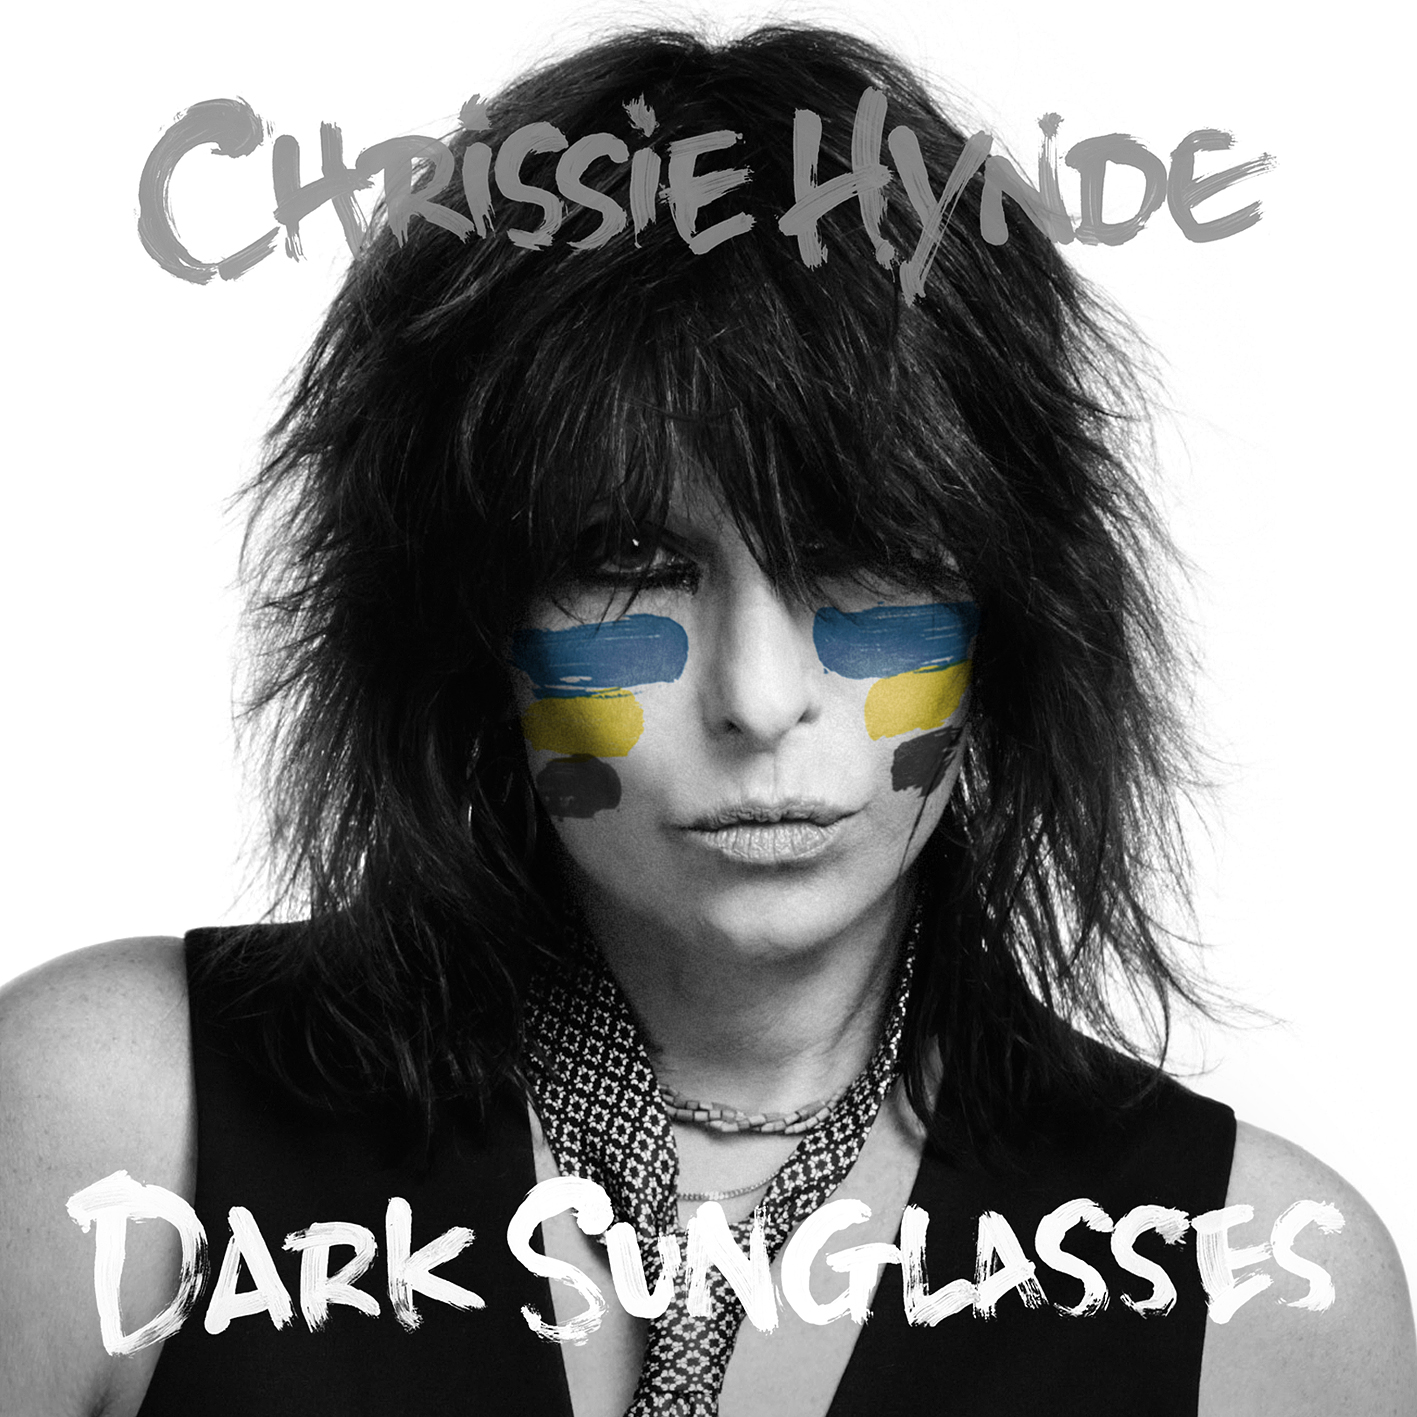 chrissie hynde angel of the morningchrissie hynde friends, chrissie hynde pretenders, chrissie hynde ray davies, chrissie hynde let it be, chrissie hynde best songs, chrissie hynde human, chrissie hynde youtube, chrissie hynde smelly cat, chrissie hynde guardian, chrissie hynde angel of the morning, chrissie hynde i wish you love, chrissie hynde angel of the morning перевод, chrissie hynde stockholm, chrissie hynde astrotheme, chrissie hynde young photos, chrissie hynde stand by me, chrissie hynde facebook, chrissie hynde discography, chrissie hynde instagram, chrissie hynde alone